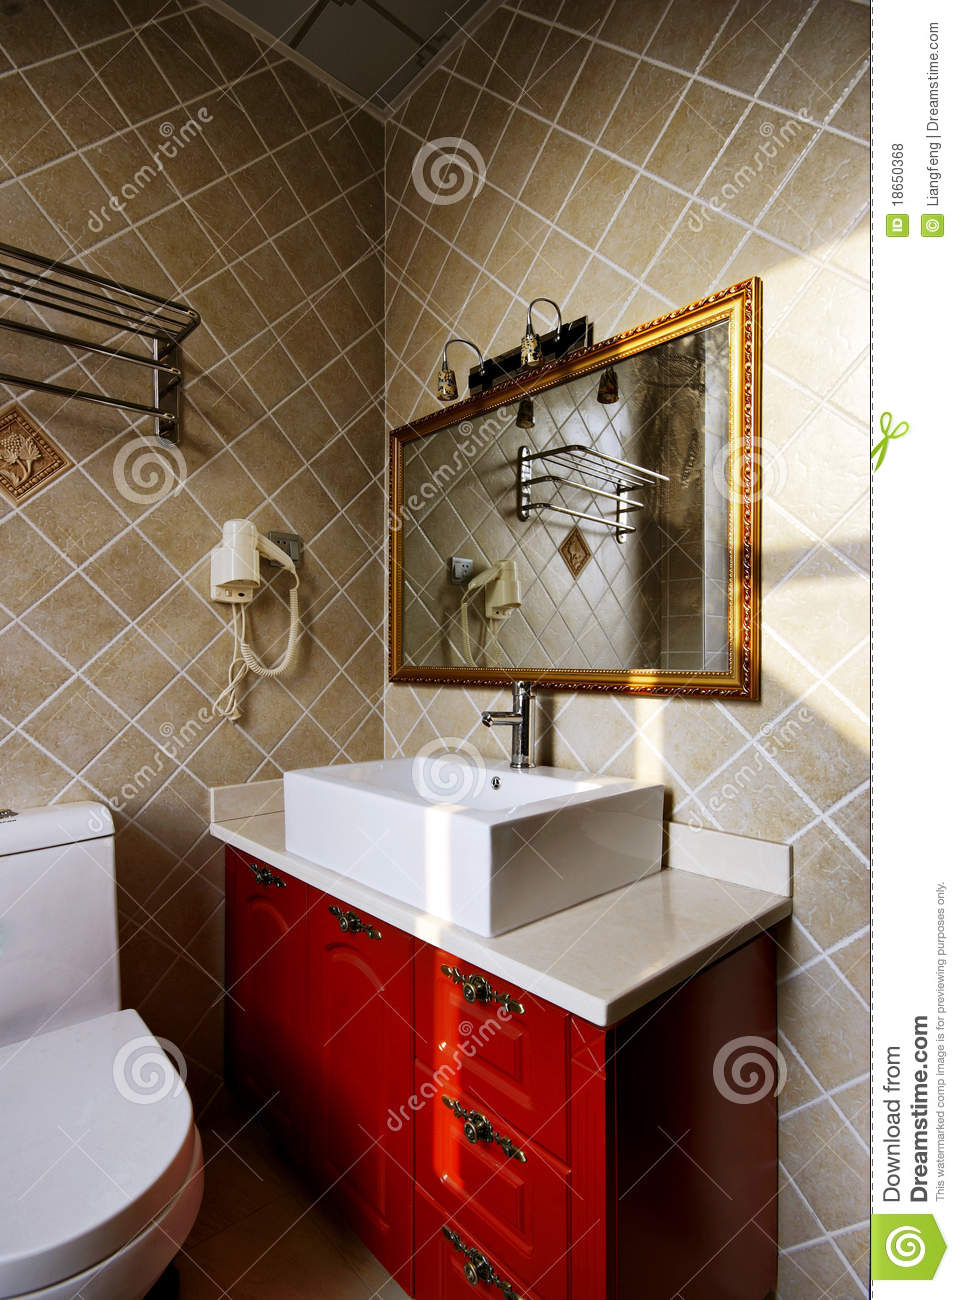 Clean Bathroom Royalty Free Stock Photos Image 18650368